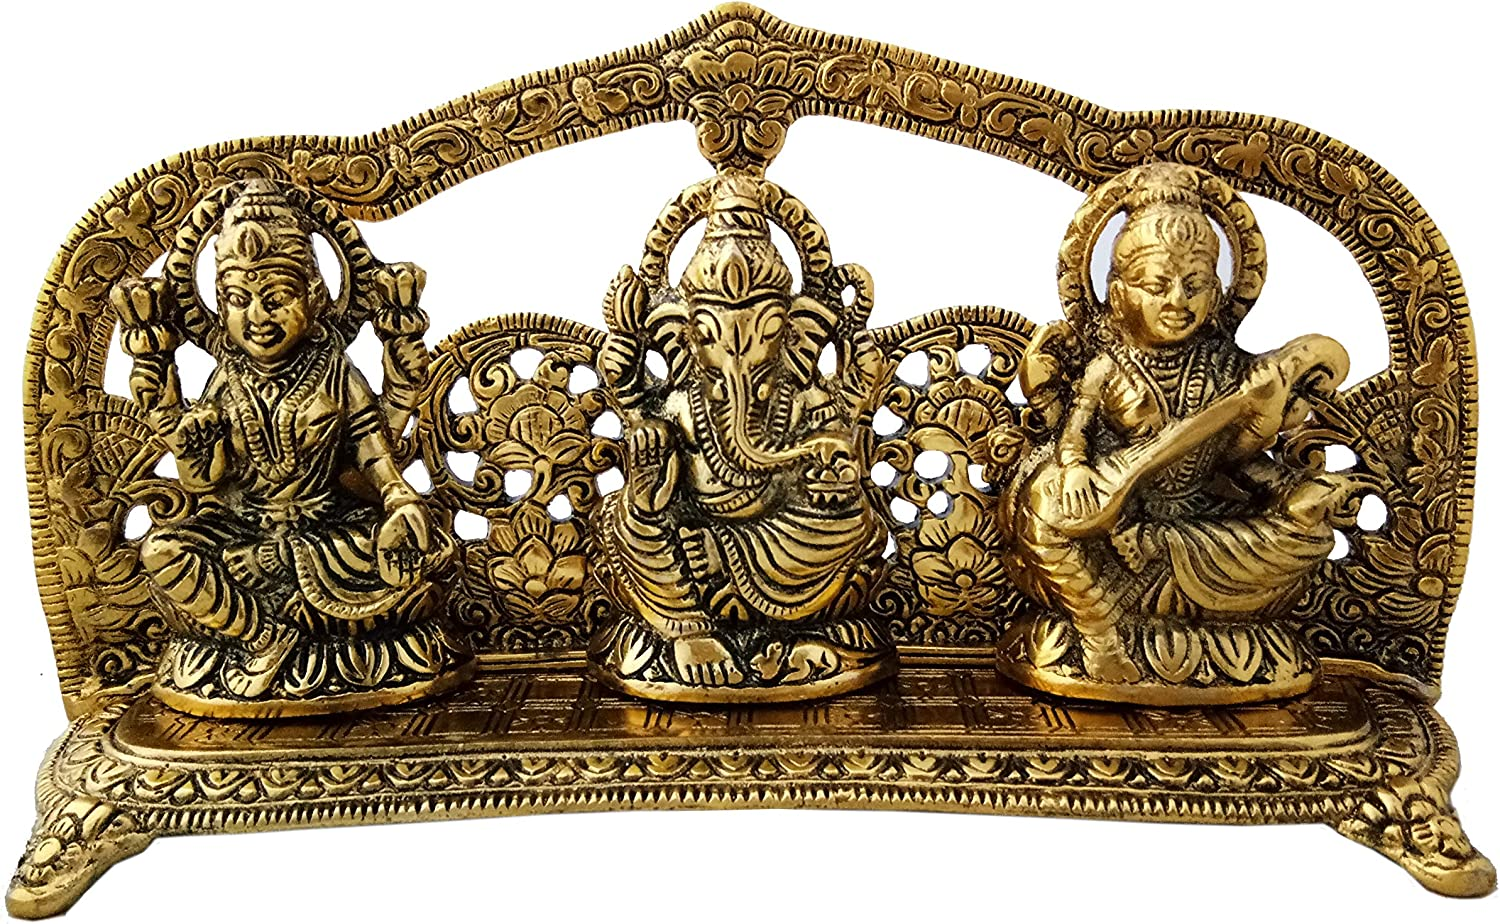 Charmy Crafts White Gold Metal Laxmi Ganesh Saraswati Handcrafted Showpiece for Home Decor Gift Item